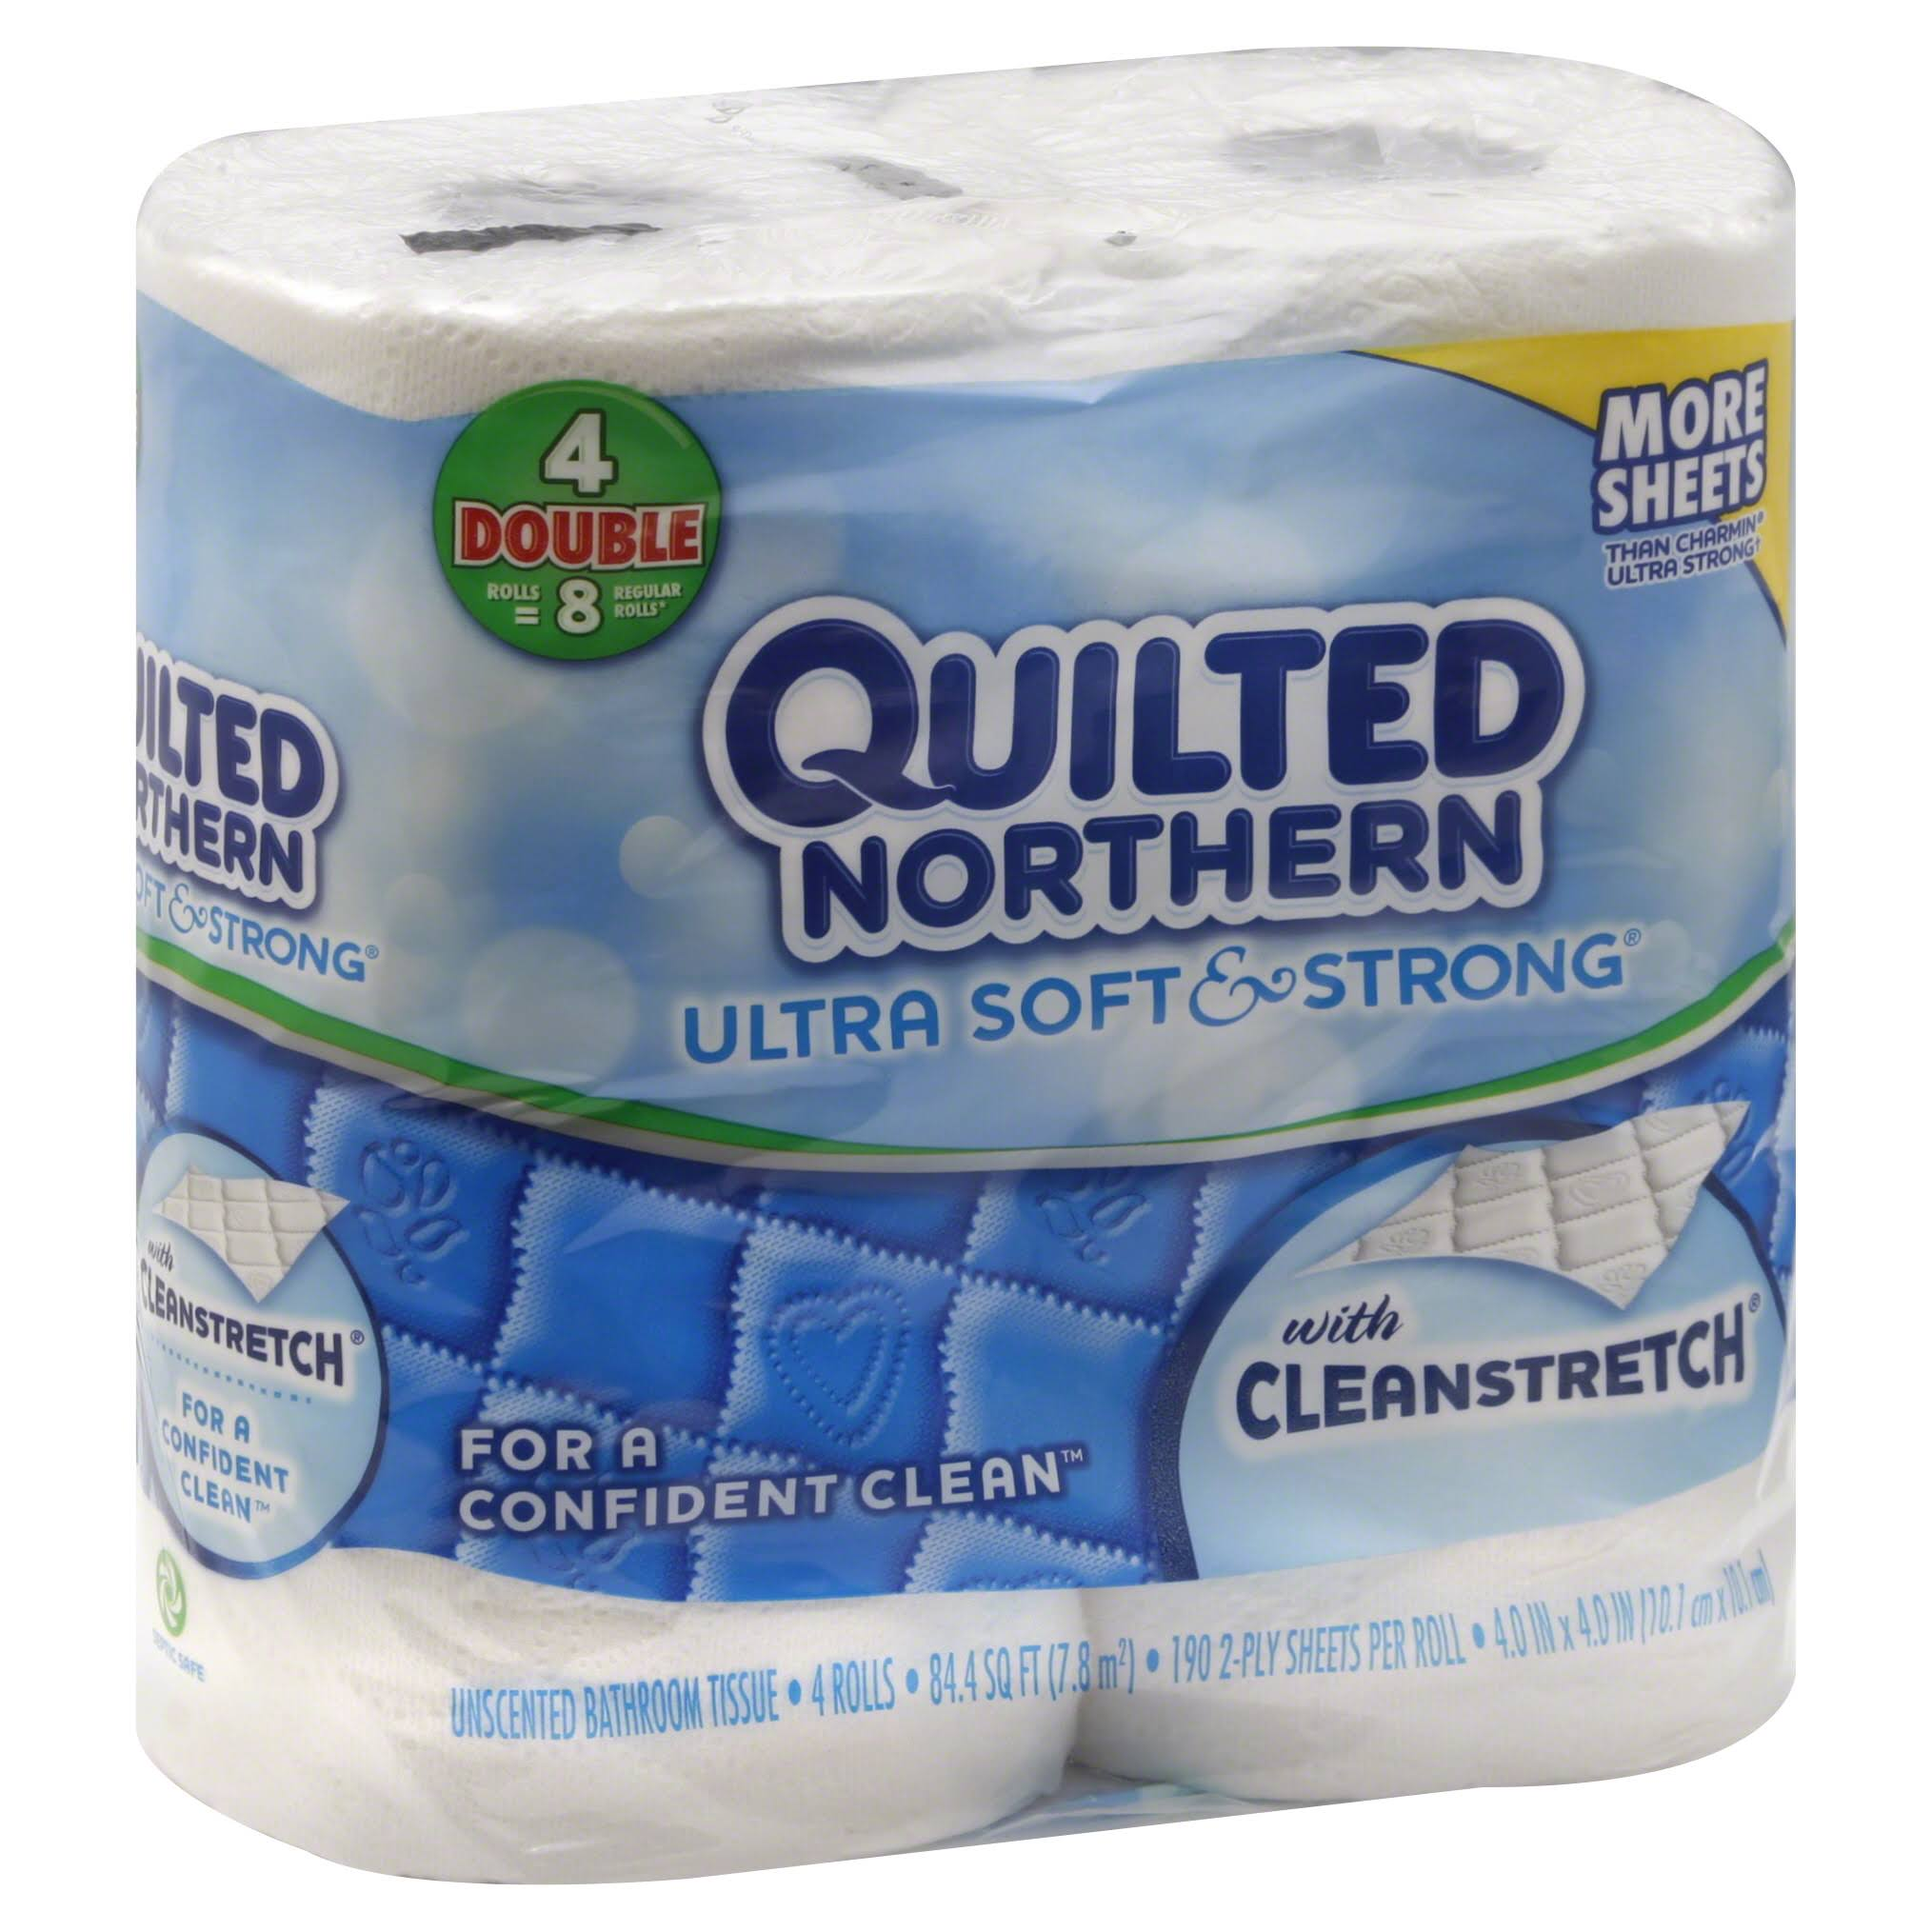 Quilted Northern Soft & Strong Toilet Paper - 4 Rolls